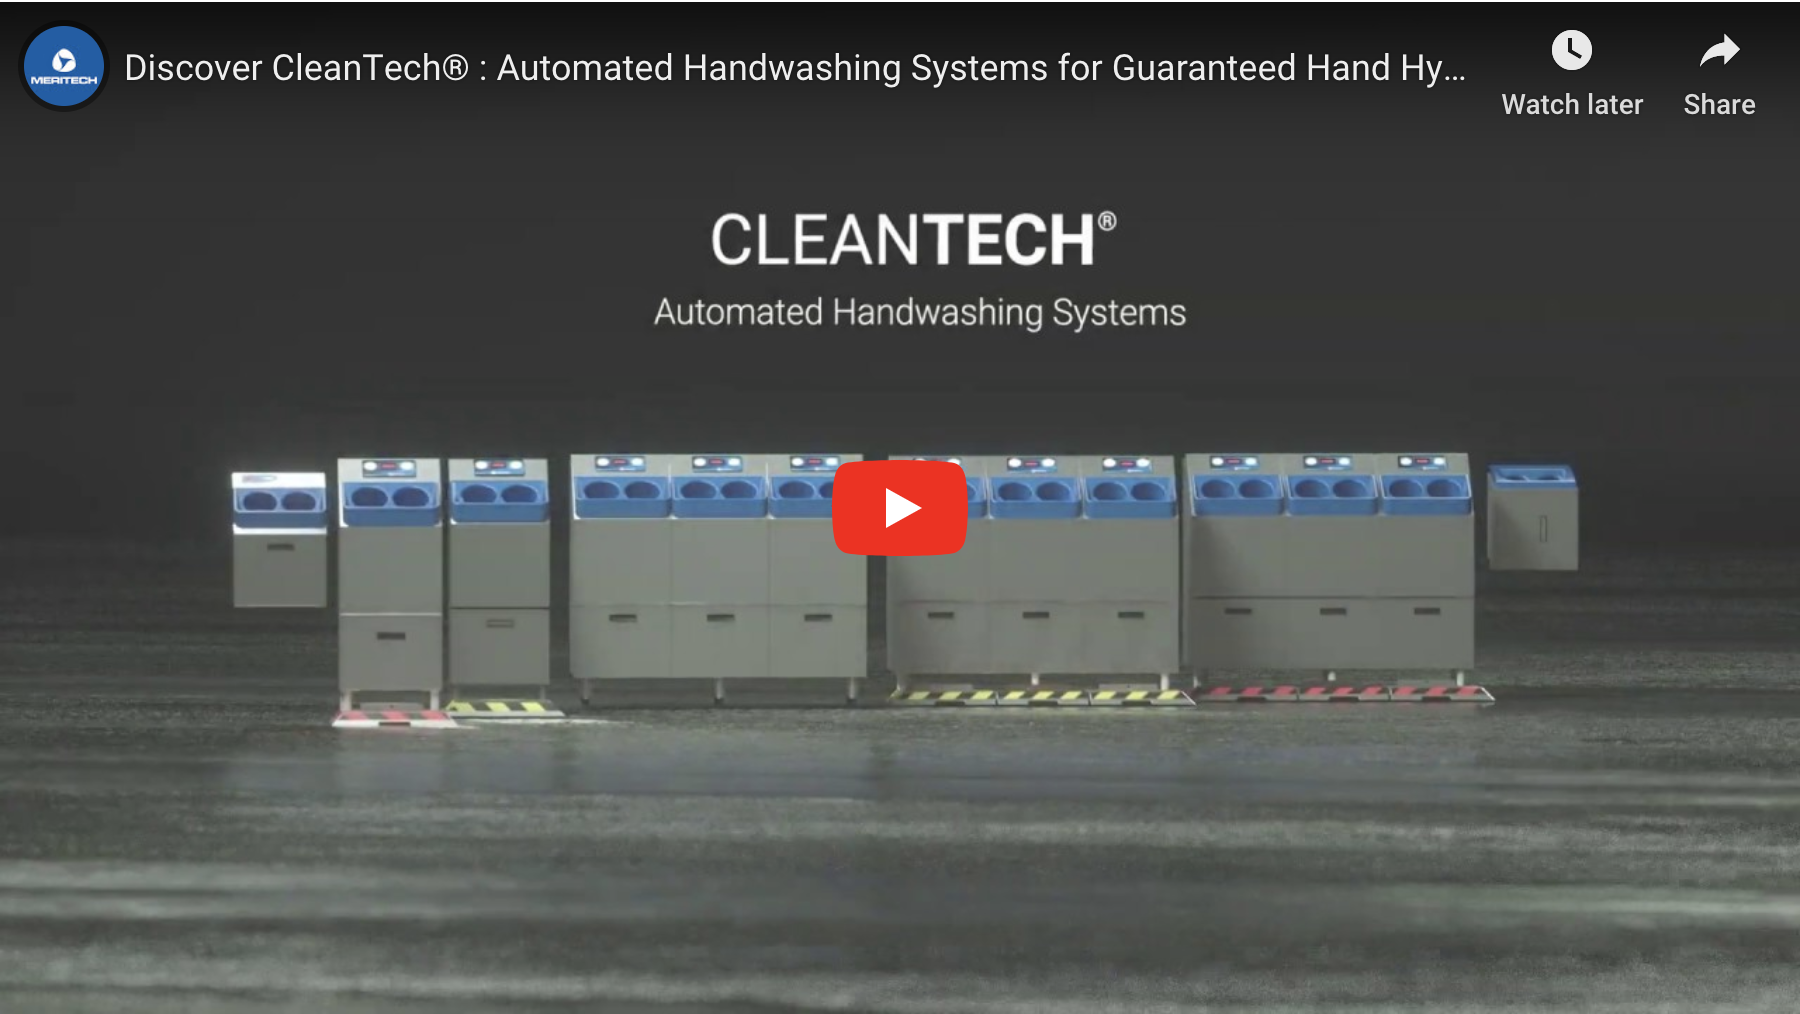 CleanTech® Handwashing Stations Overview